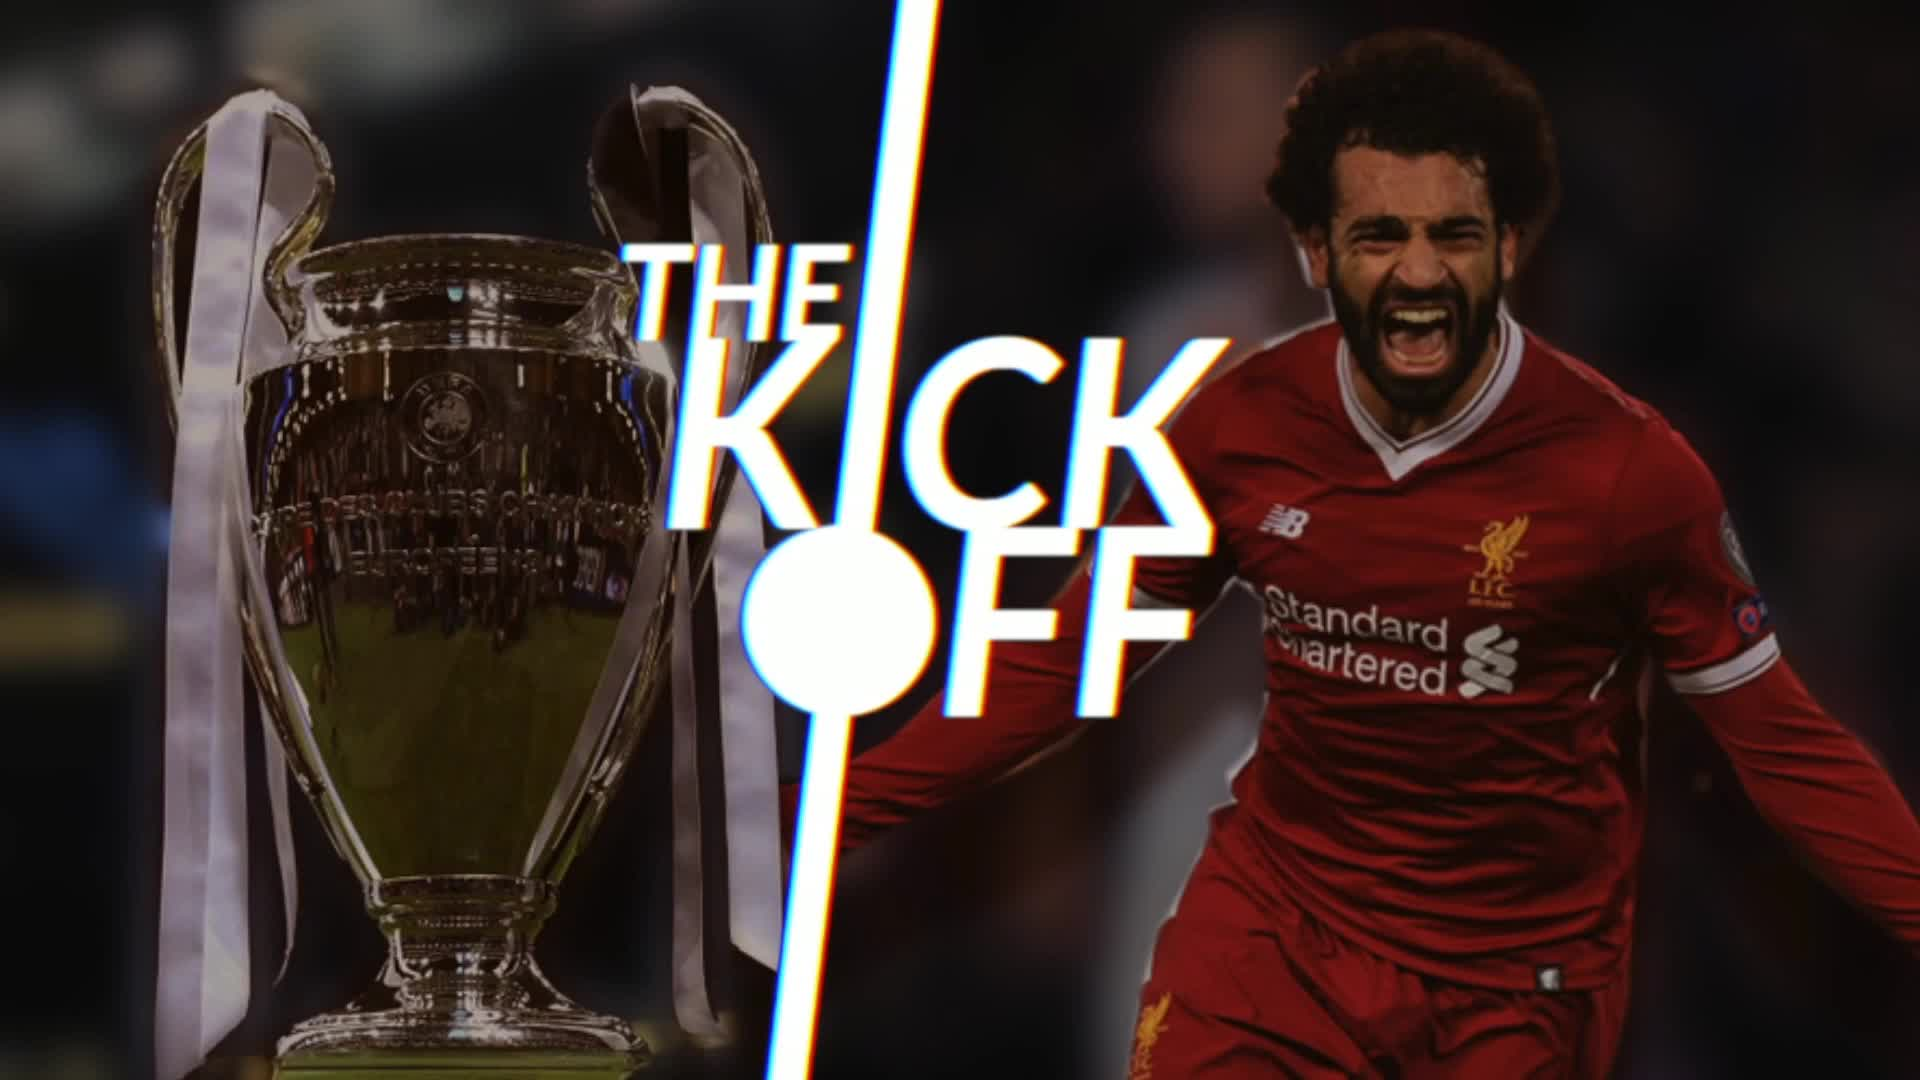 BT Sport, Bale, Benzema, Champions League, Firmino, Goals, Interview, Live, Live Stream, Liverpool, Real Madrid, Ronaldo, Salah, Stream, highlights, highlights goals, real madrid 3-1 liverpool, REAL MADRID 3-1 LIVERPOOL | The Kick Off with Coral #33 GIFs